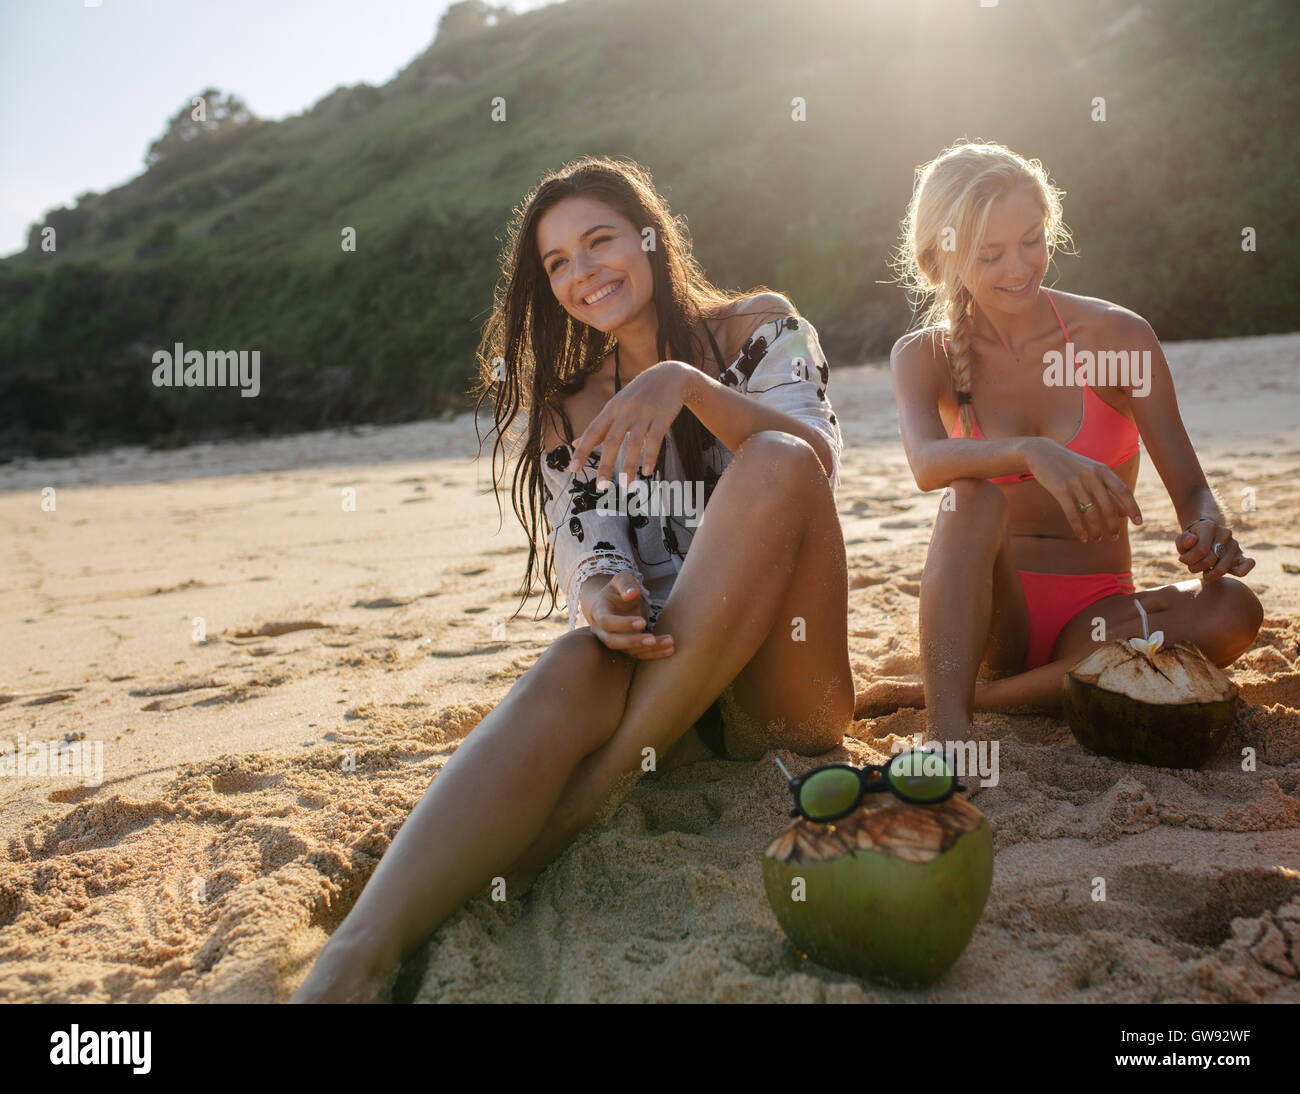 Two young women sitting on the sea shore and smiling. Female friends relaxing on the beach with coconuts on sand. - Stock Image